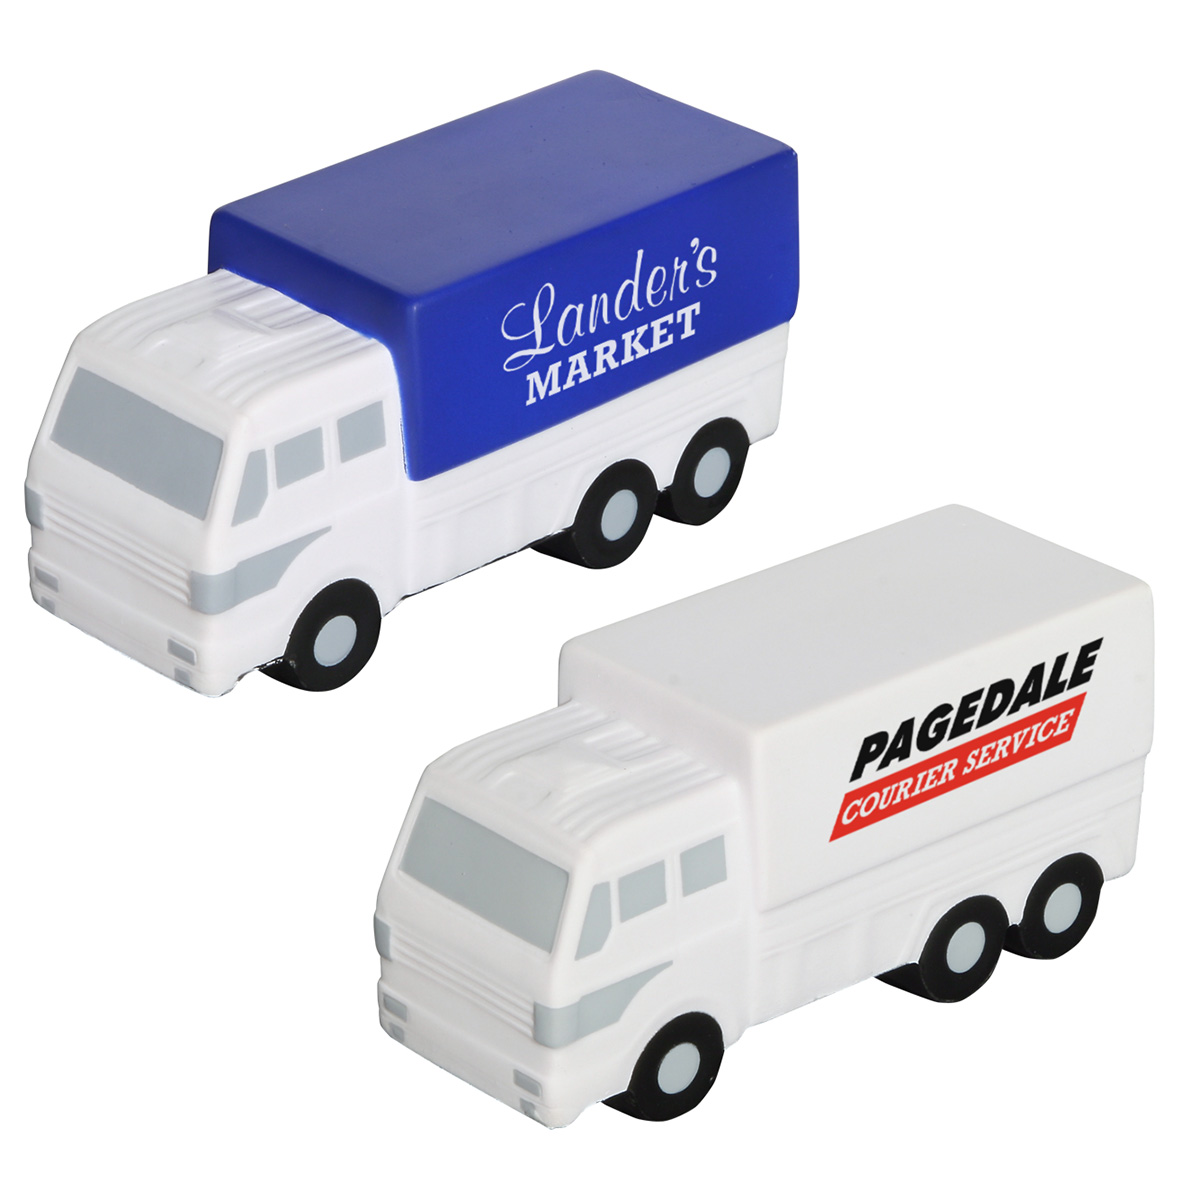 Delivery Truck Stress Reliever, LTR-DT19 - 1 Colour Imprint